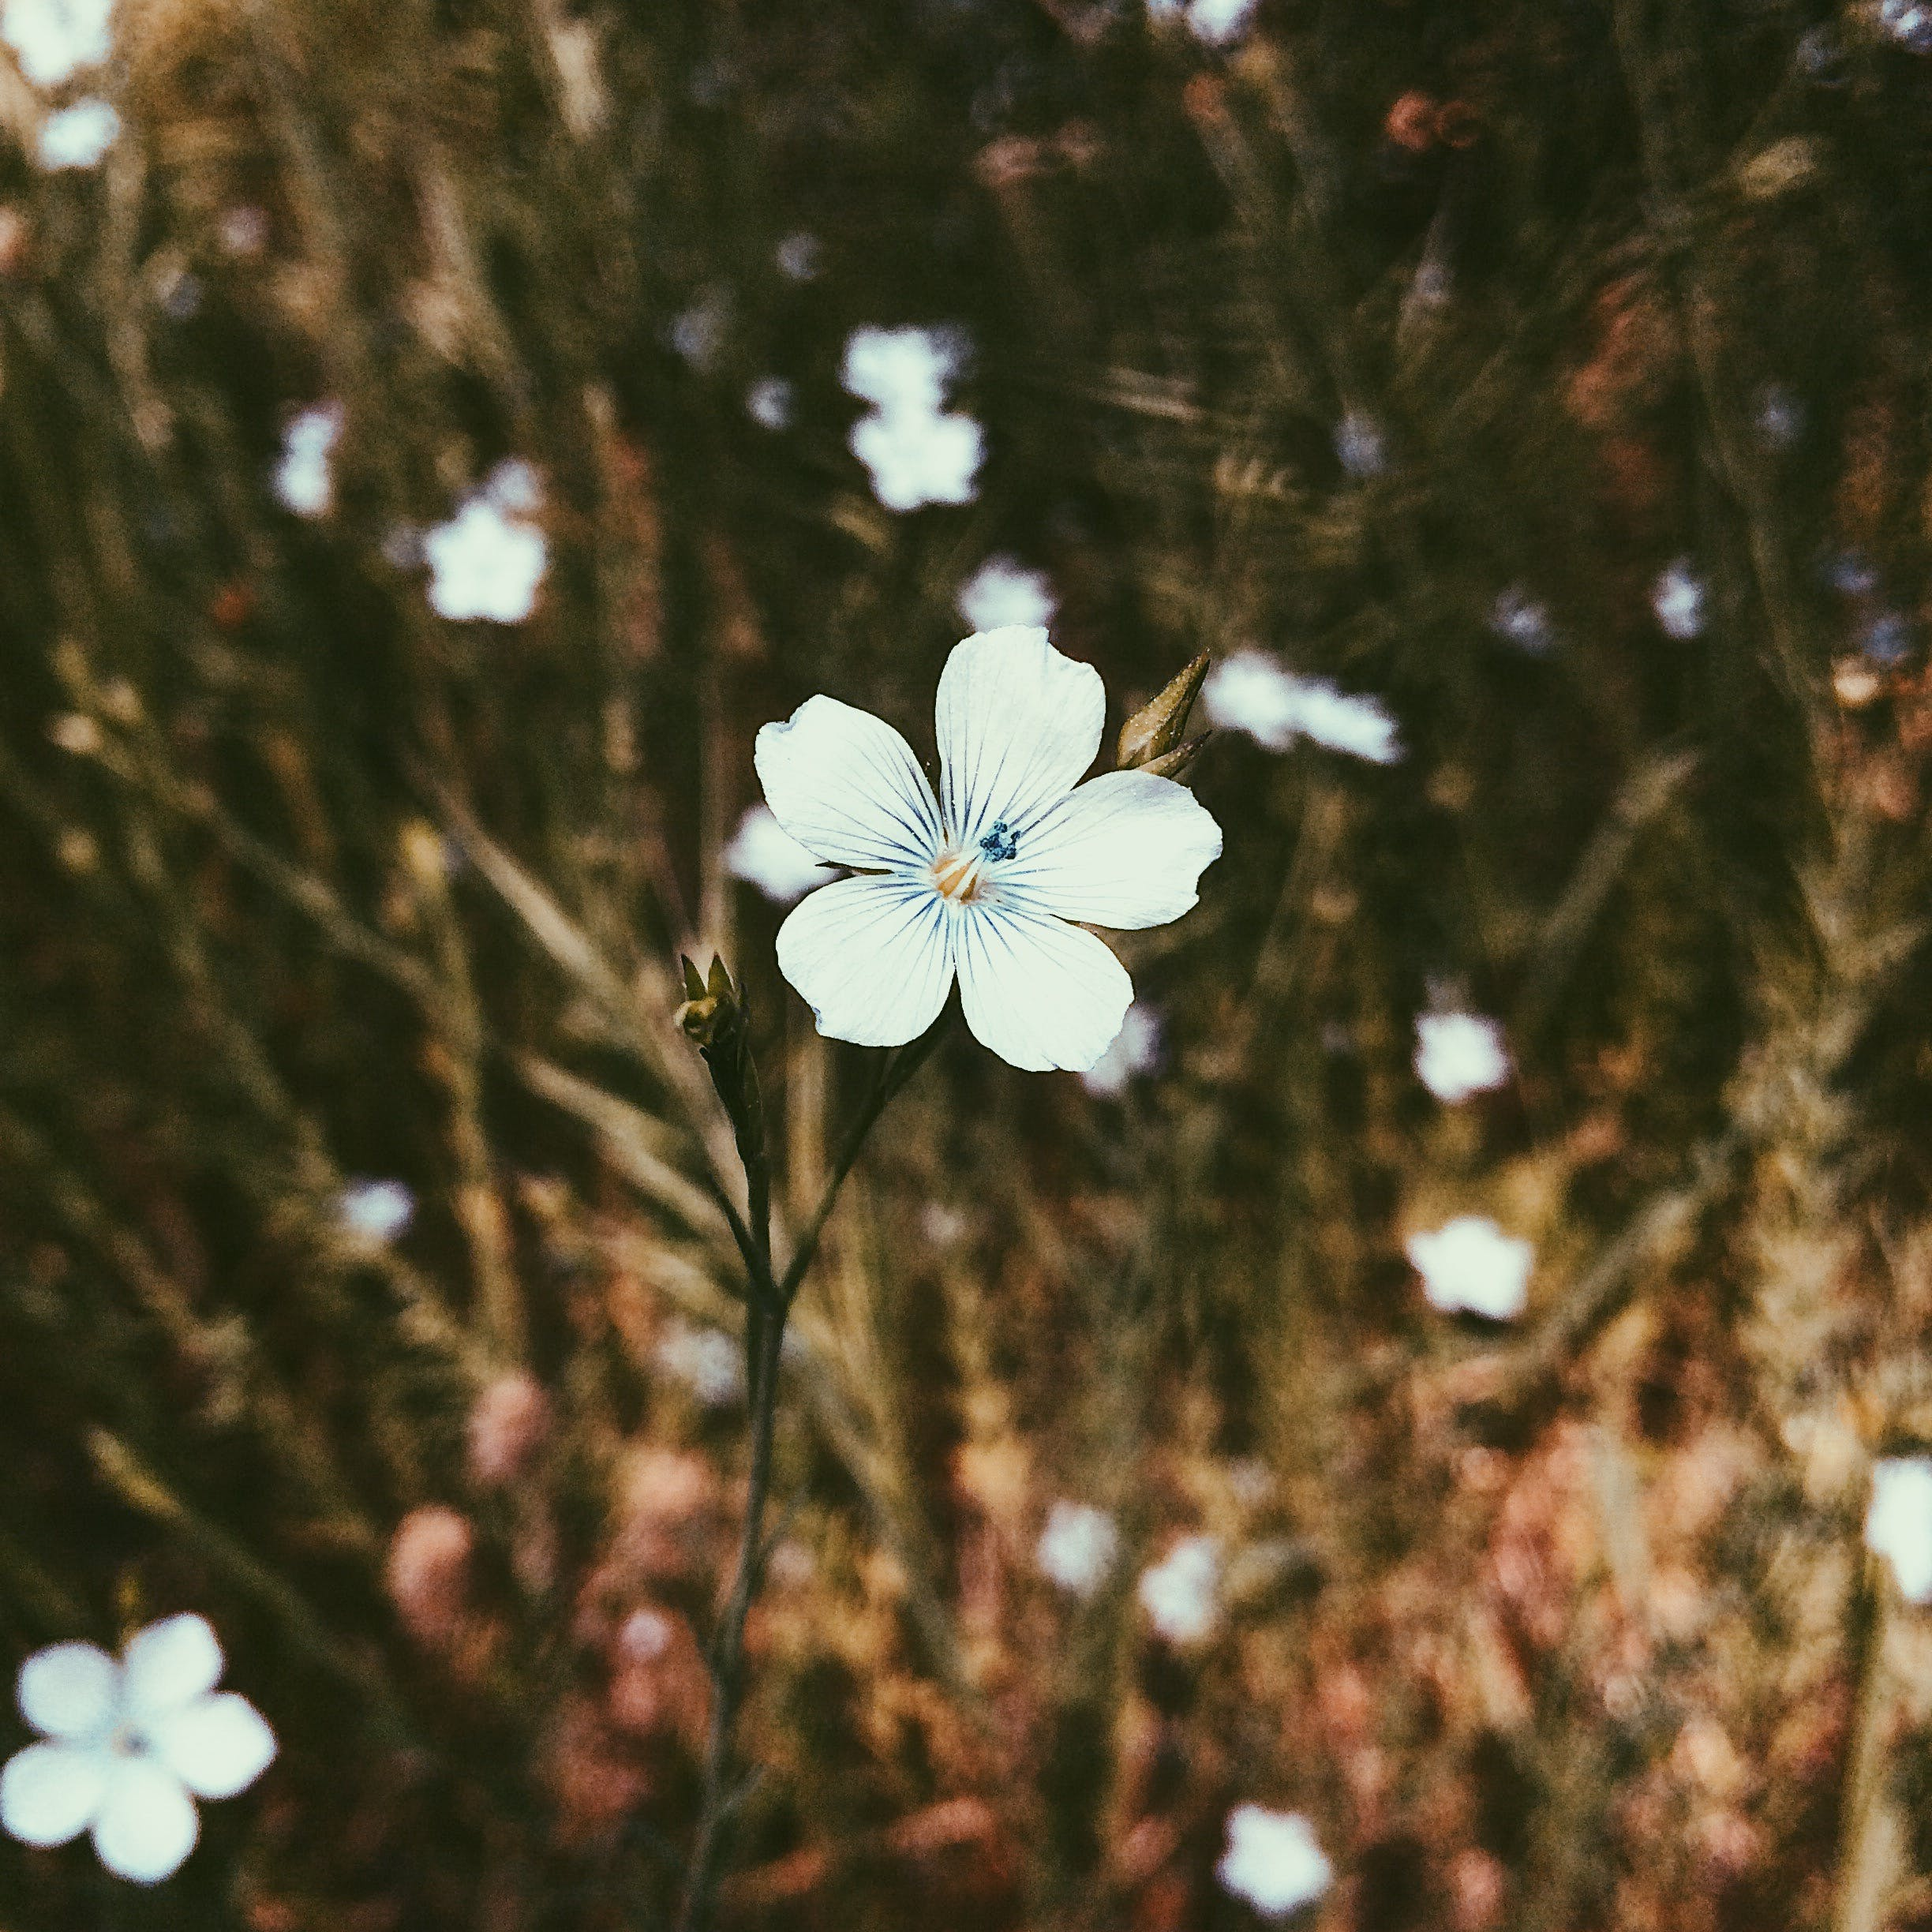 White Petaled Flower in Closeup Photo